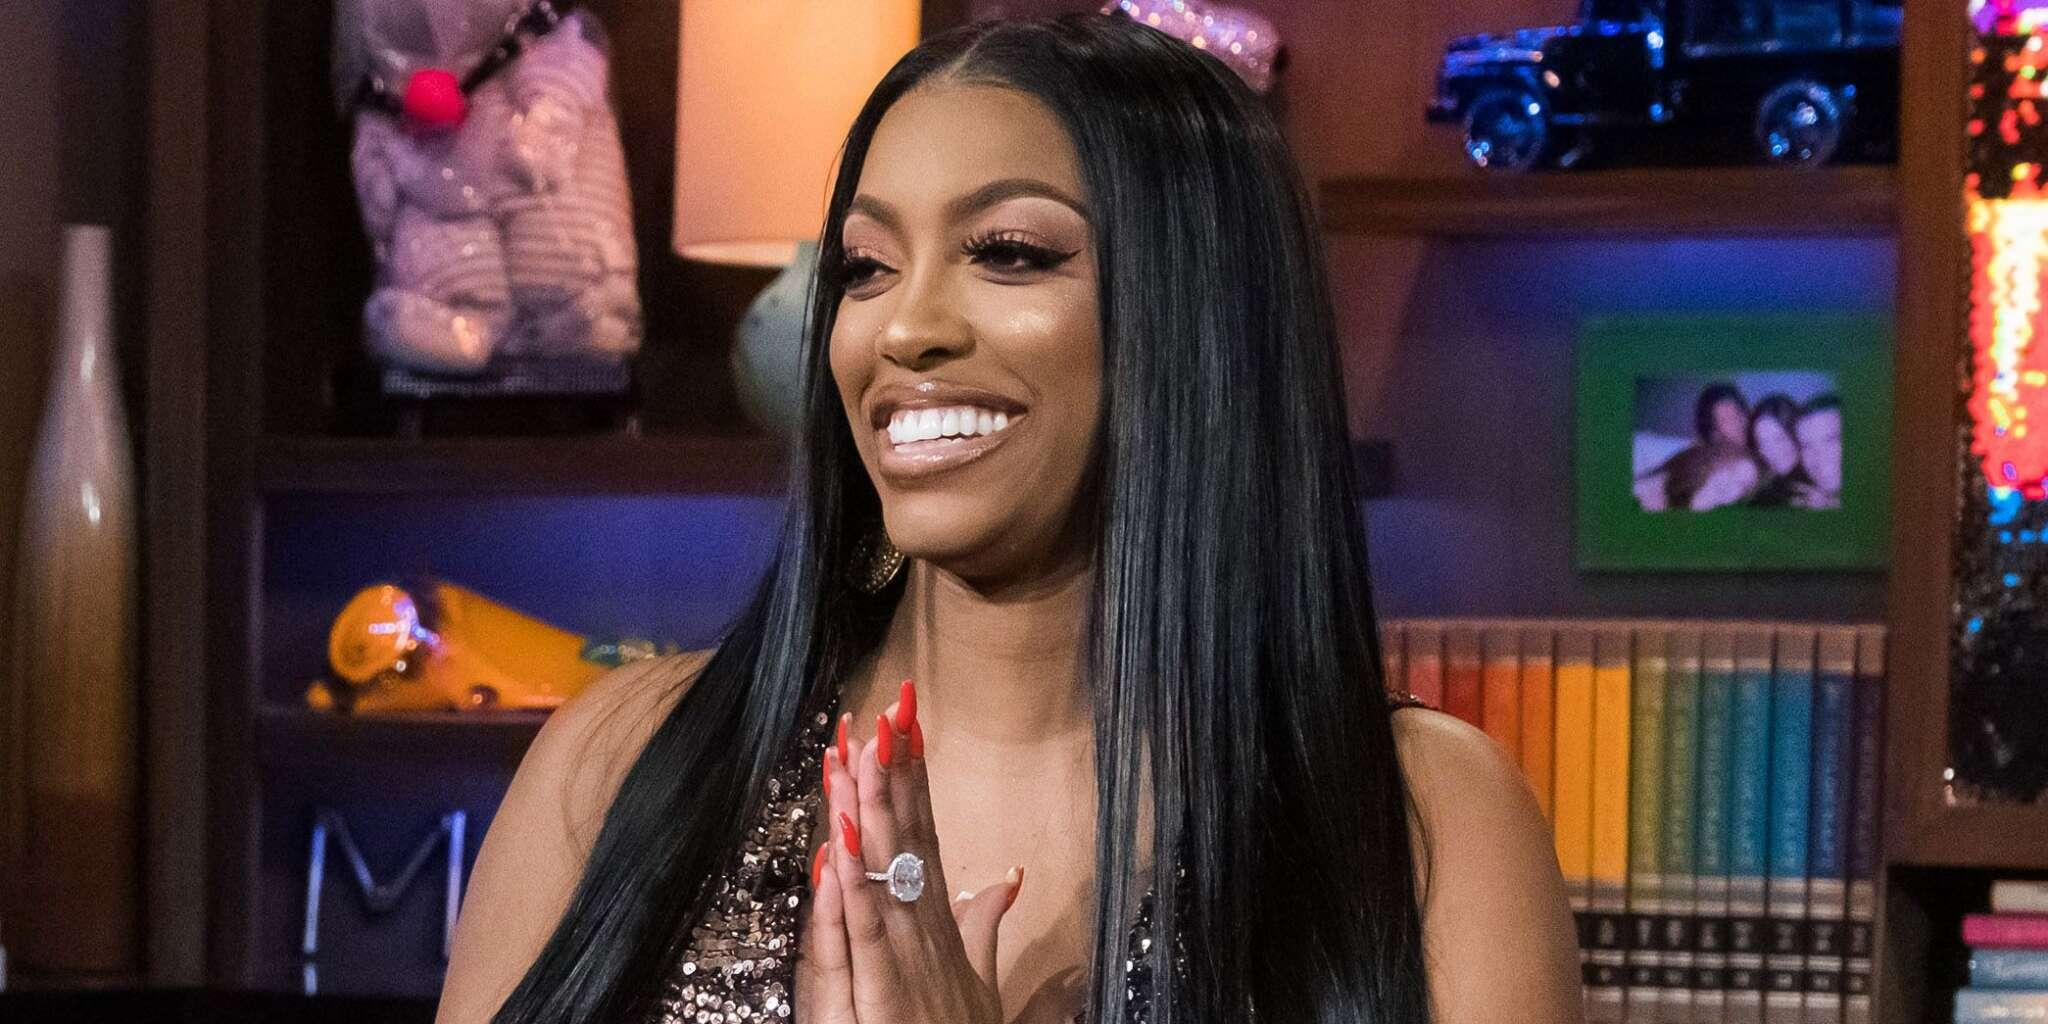 Porsha Williams Drops An Update About Breonna Taylor - Fans Are Outraged